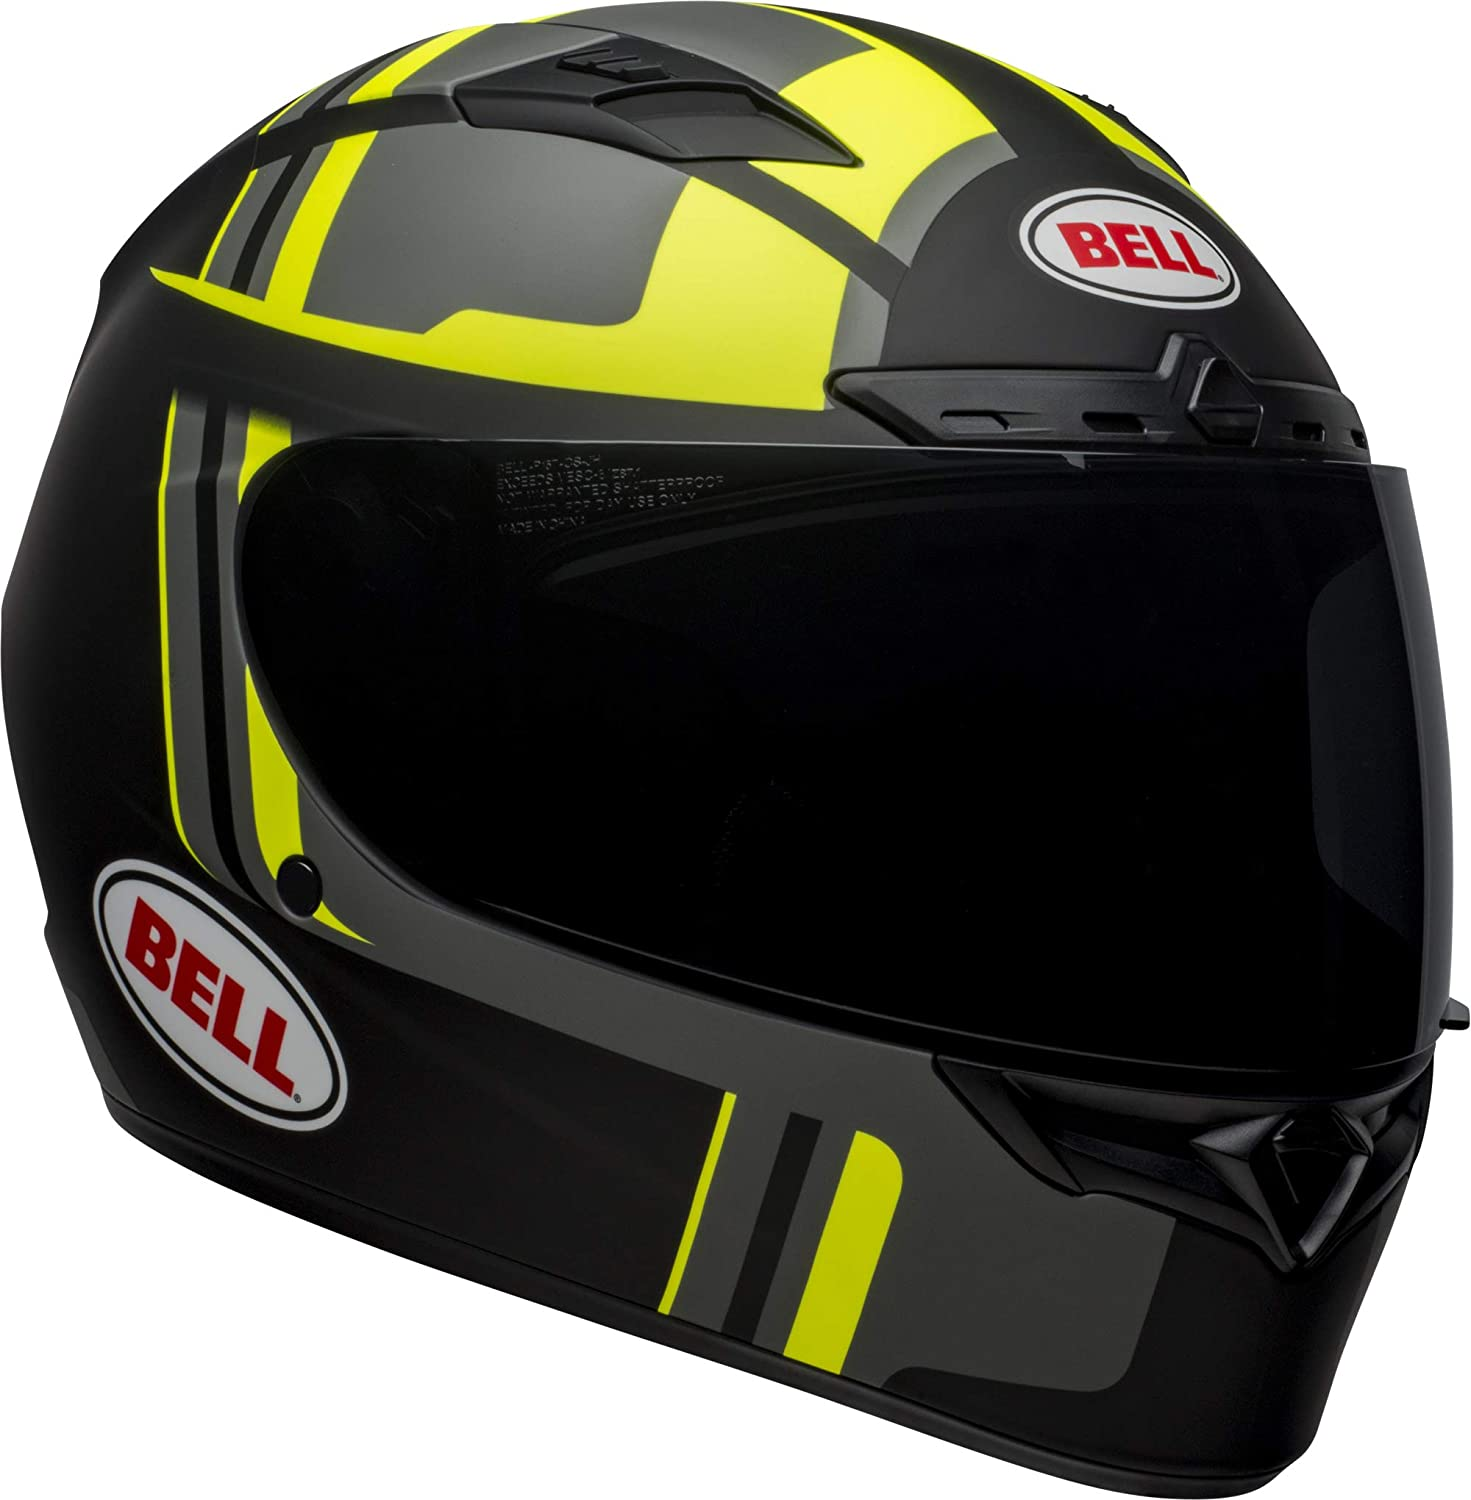 BELL QUALIFIER MOTORCYCLE HELMET TORQUE BLUE YELLOW DOT APPROVED FREE SHIPPING